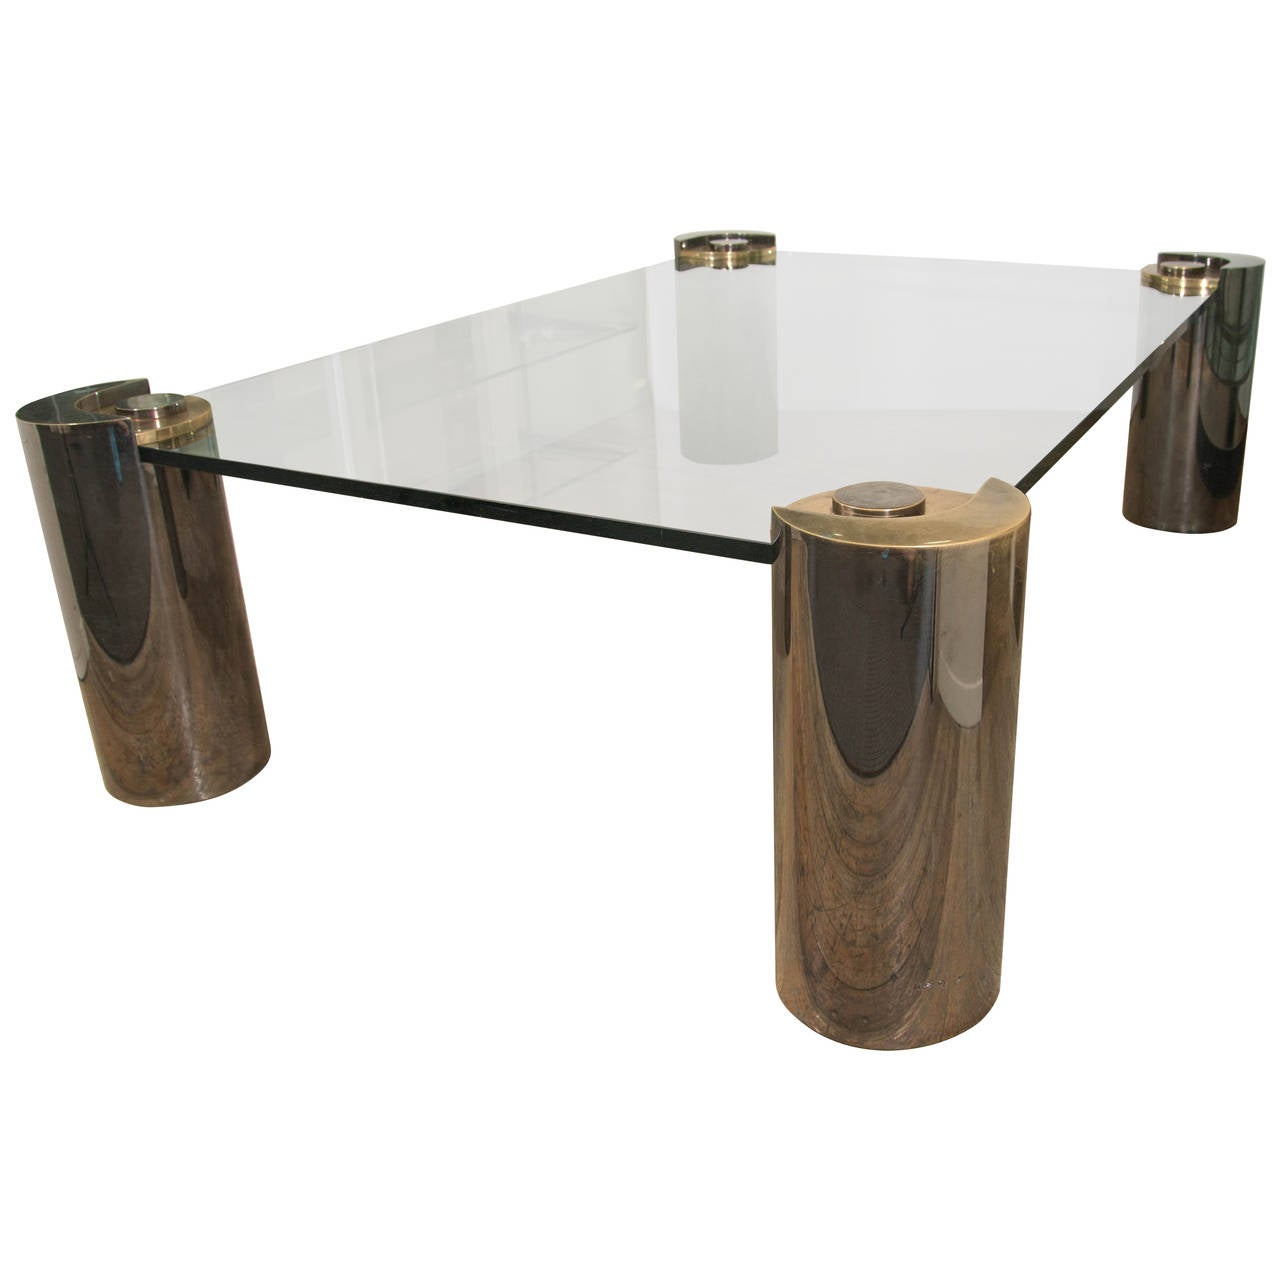 Karl springer glass top coffee table with cylindrical chrome and brass legs for sale at 1stdibs Legs for a coffee table